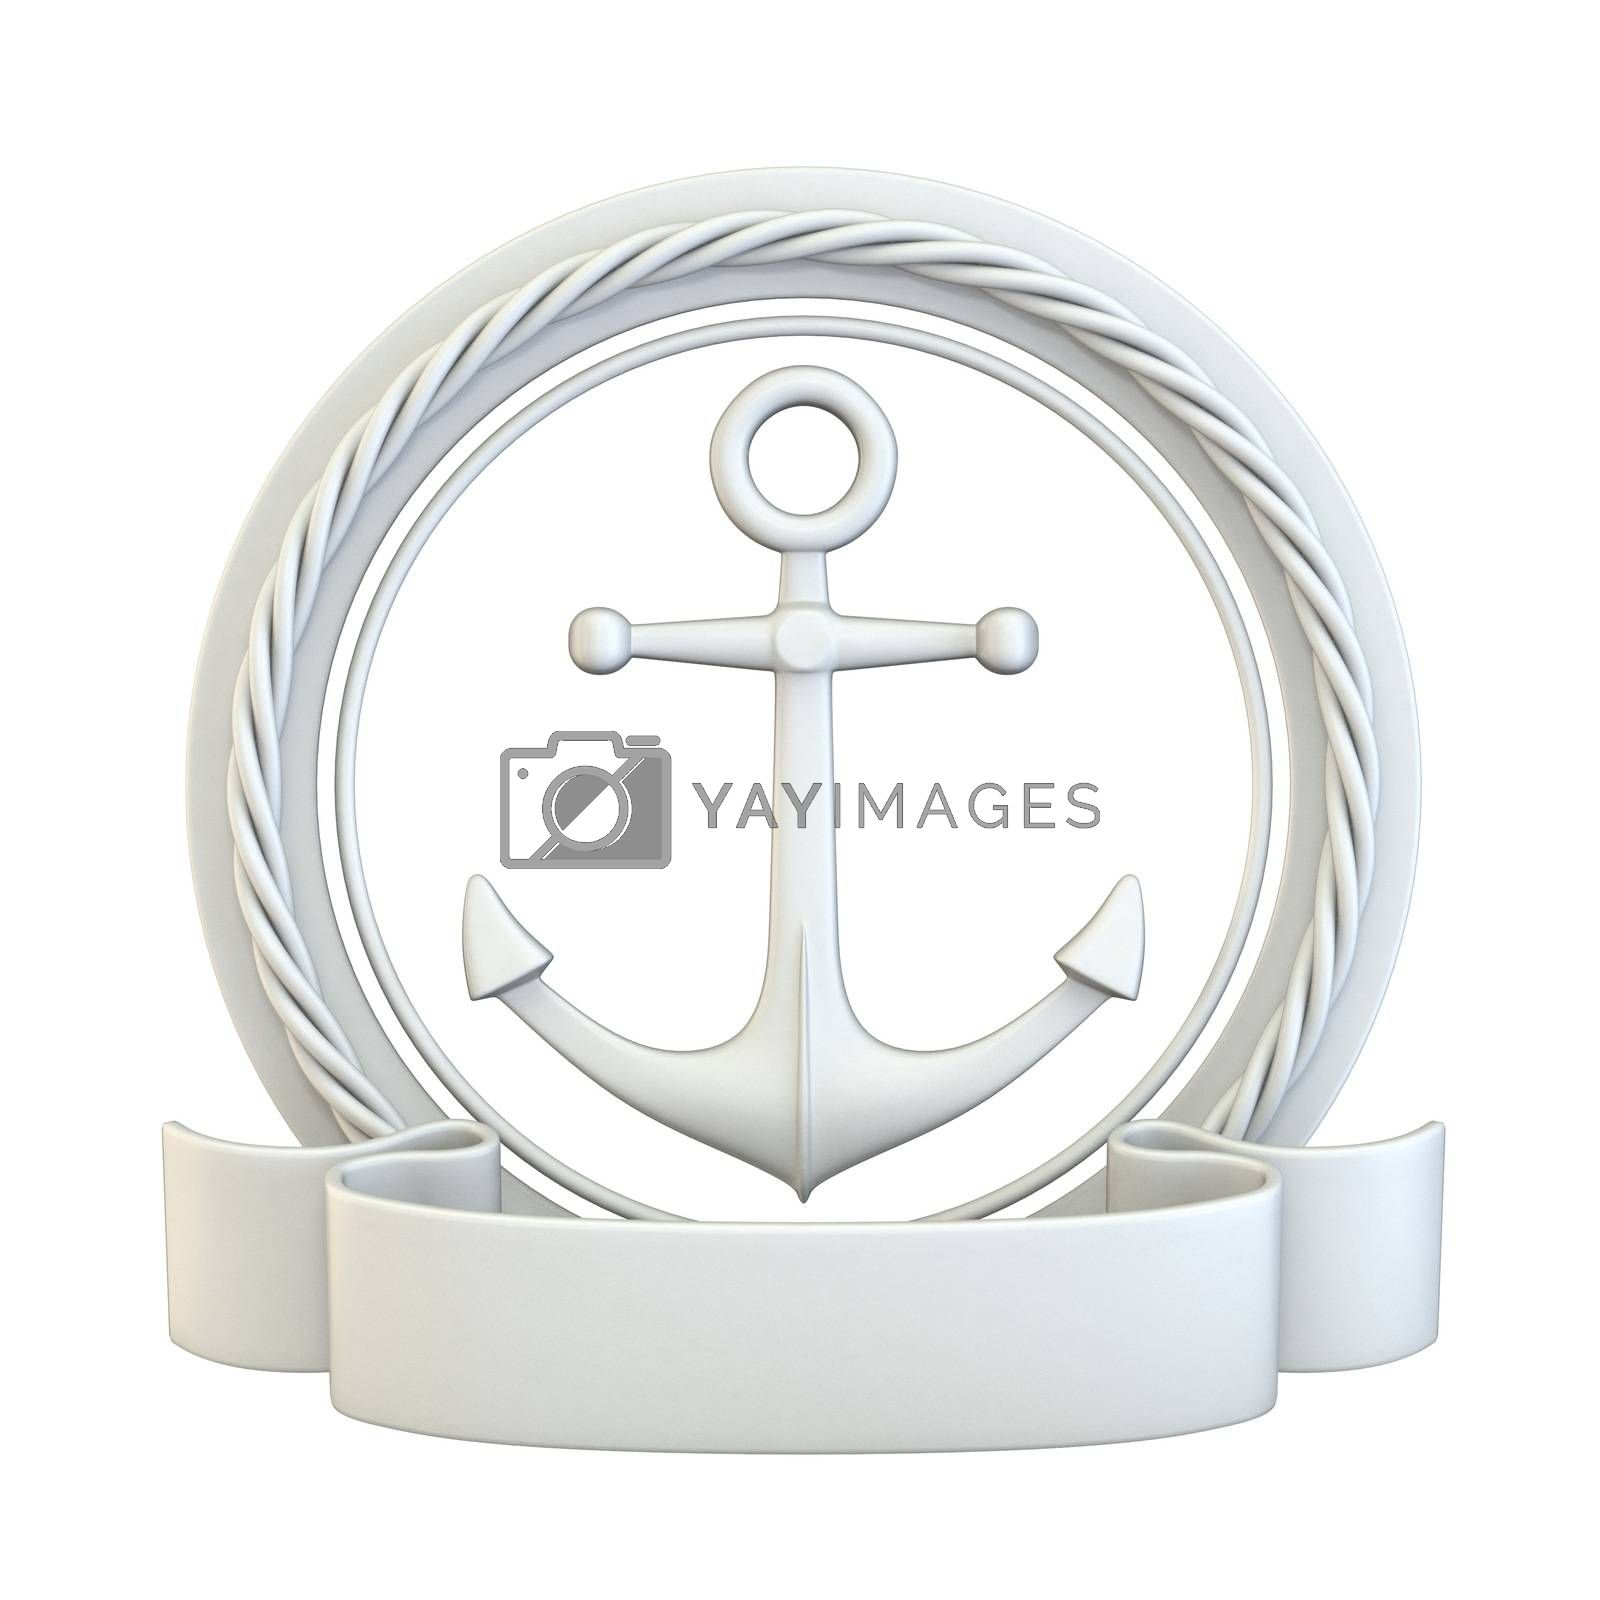 White anchor, ribbon and rope 3D render illustration isolated on white background